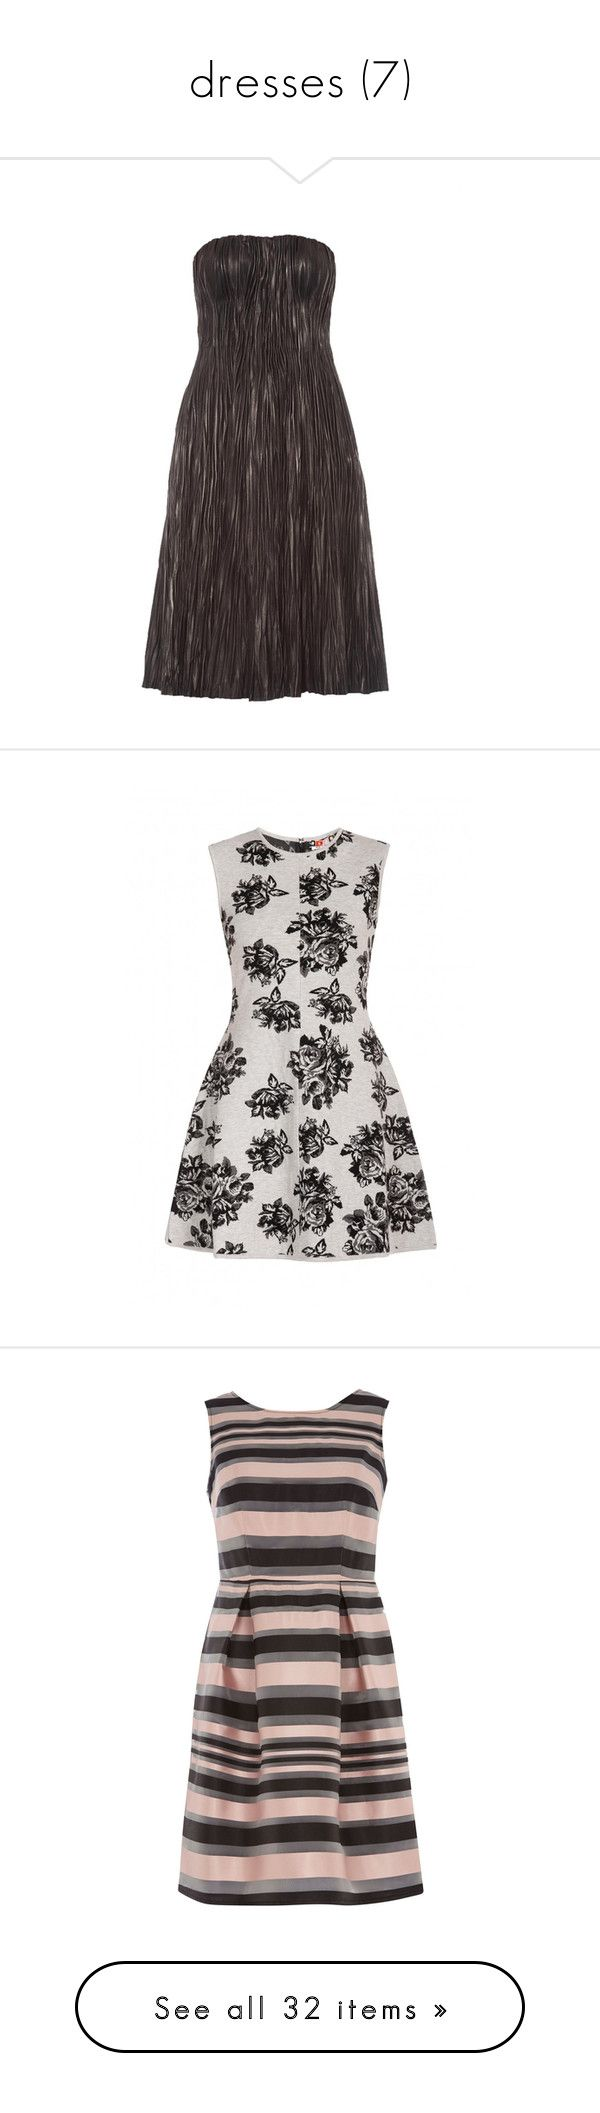 """""""dresses (7)"""" by namelessginger ❤ liked on Polyvore featuring dresses, black, leather cocktail dress, bustier dress, strapless bustier dress, strapless dresses, strapless bustier, grey, floral skater skirt and tight fitting dresses"""